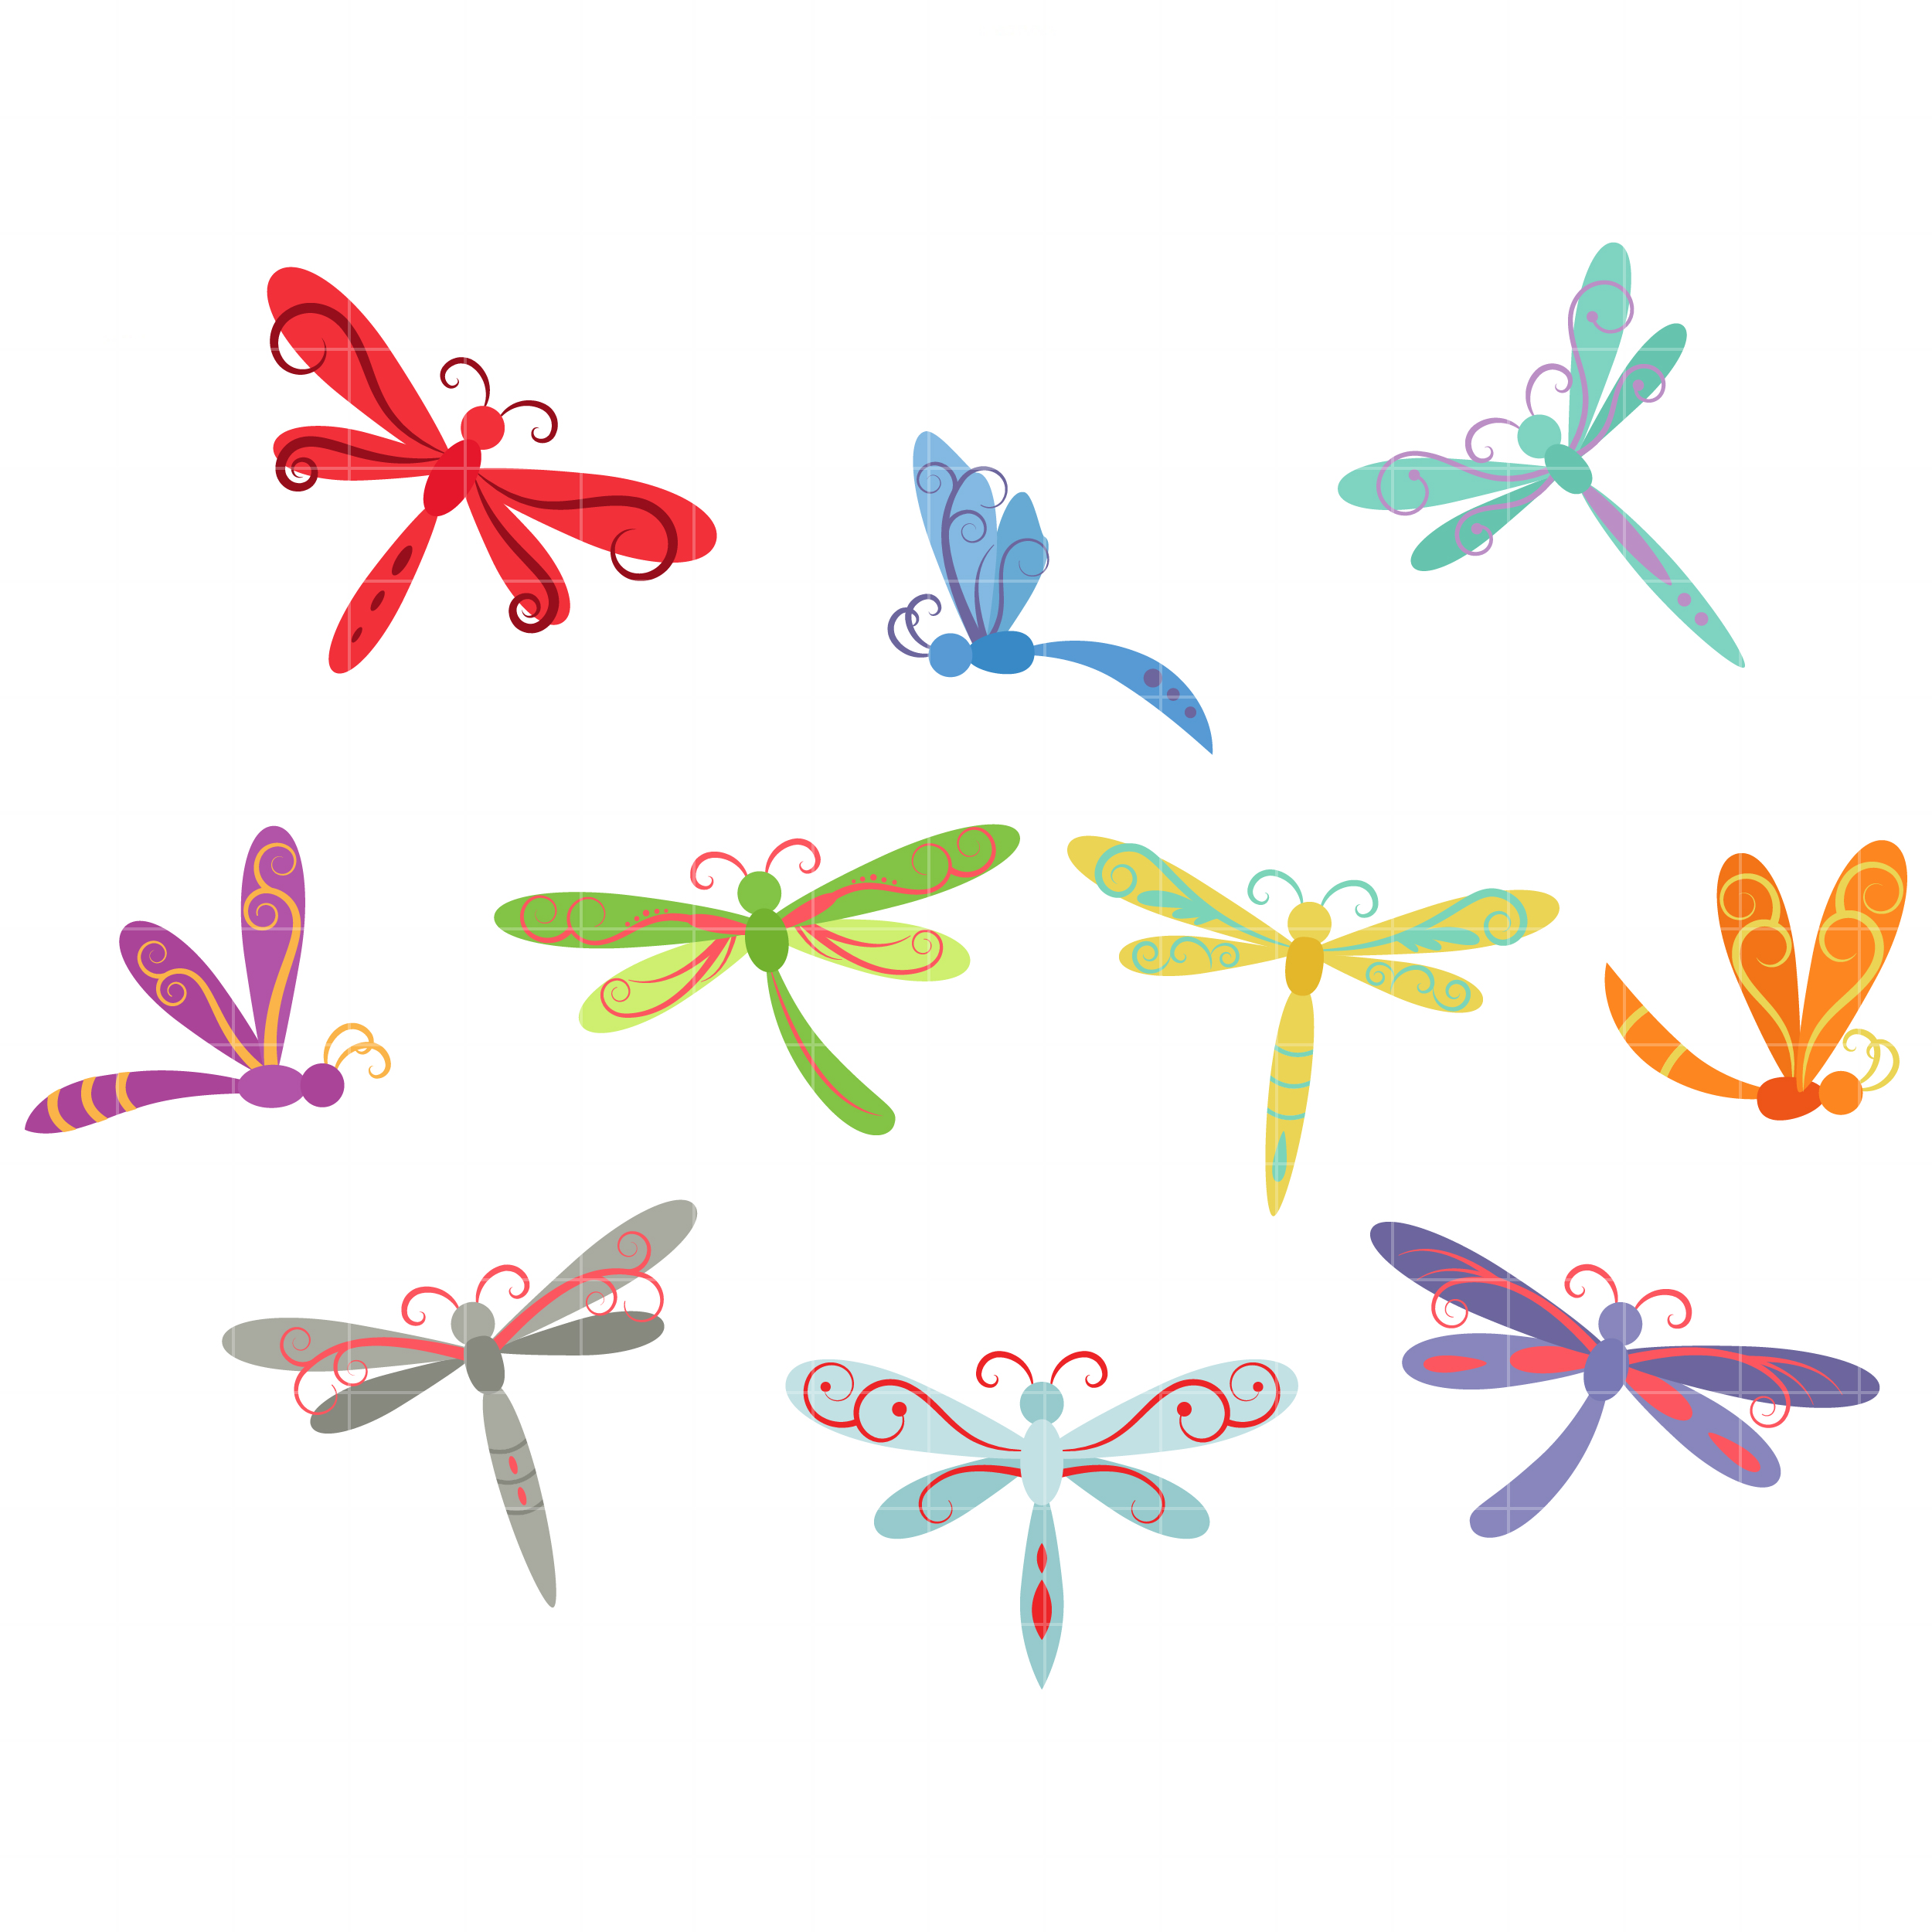 Cute cartoon dragonfly clipart free clip-Cute cartoon dragonfly clipart free clip art image image. Whimsical Clip Art-9